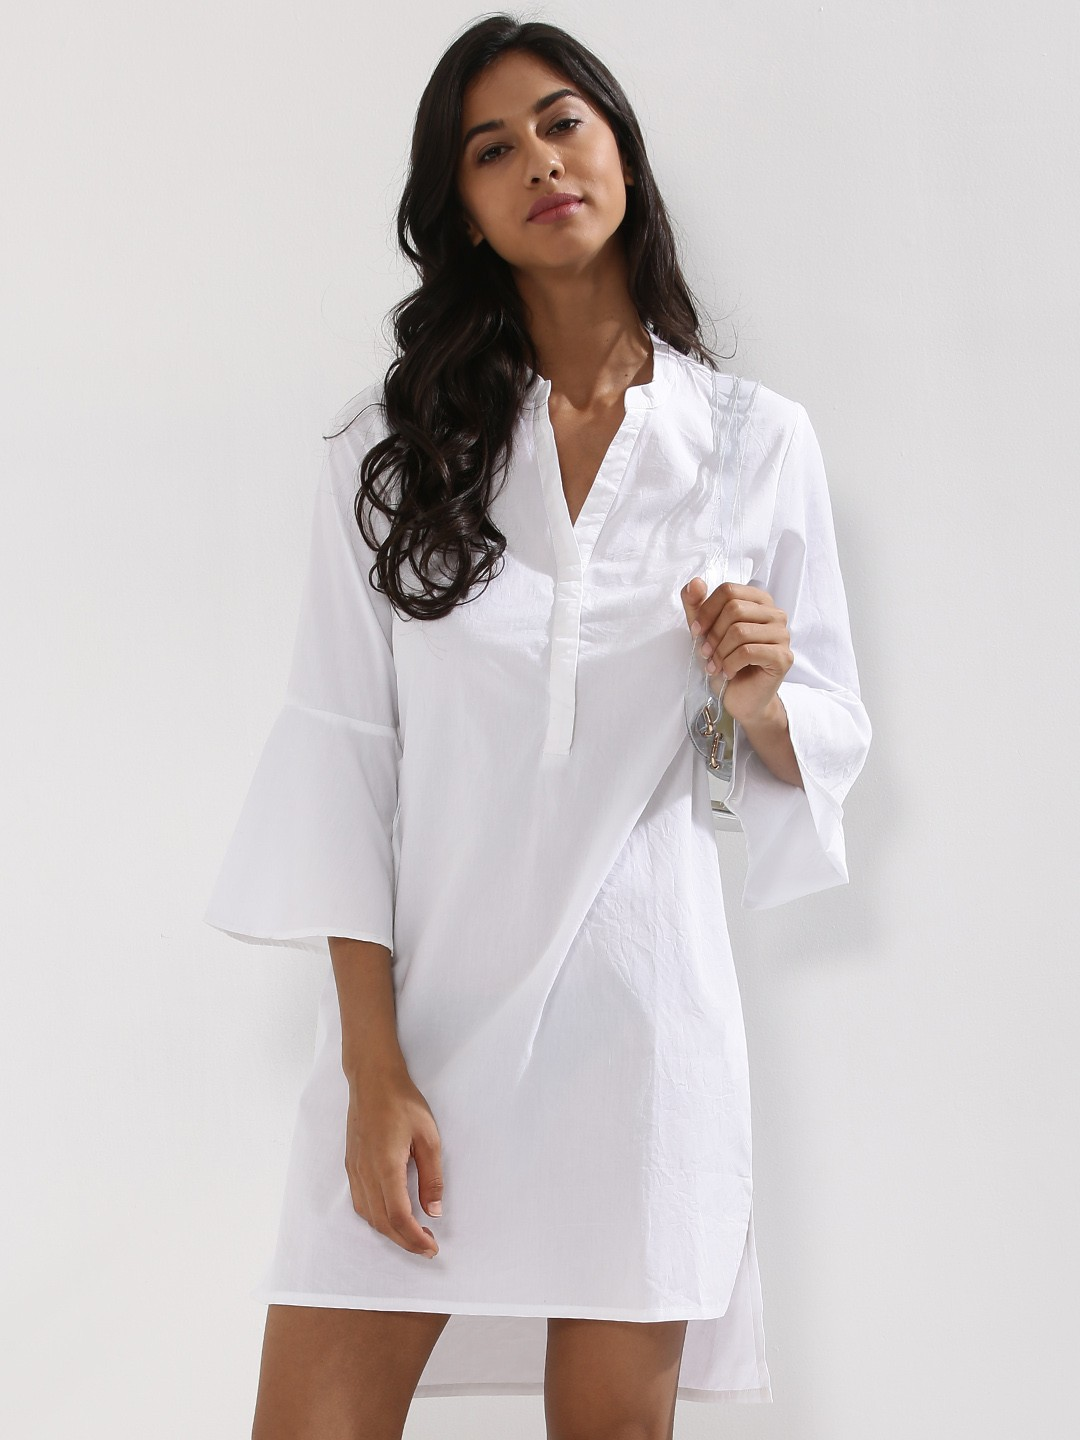 Buy koovs fluted sleeve shirt dress for women women 39 s for Buy white dress shirt